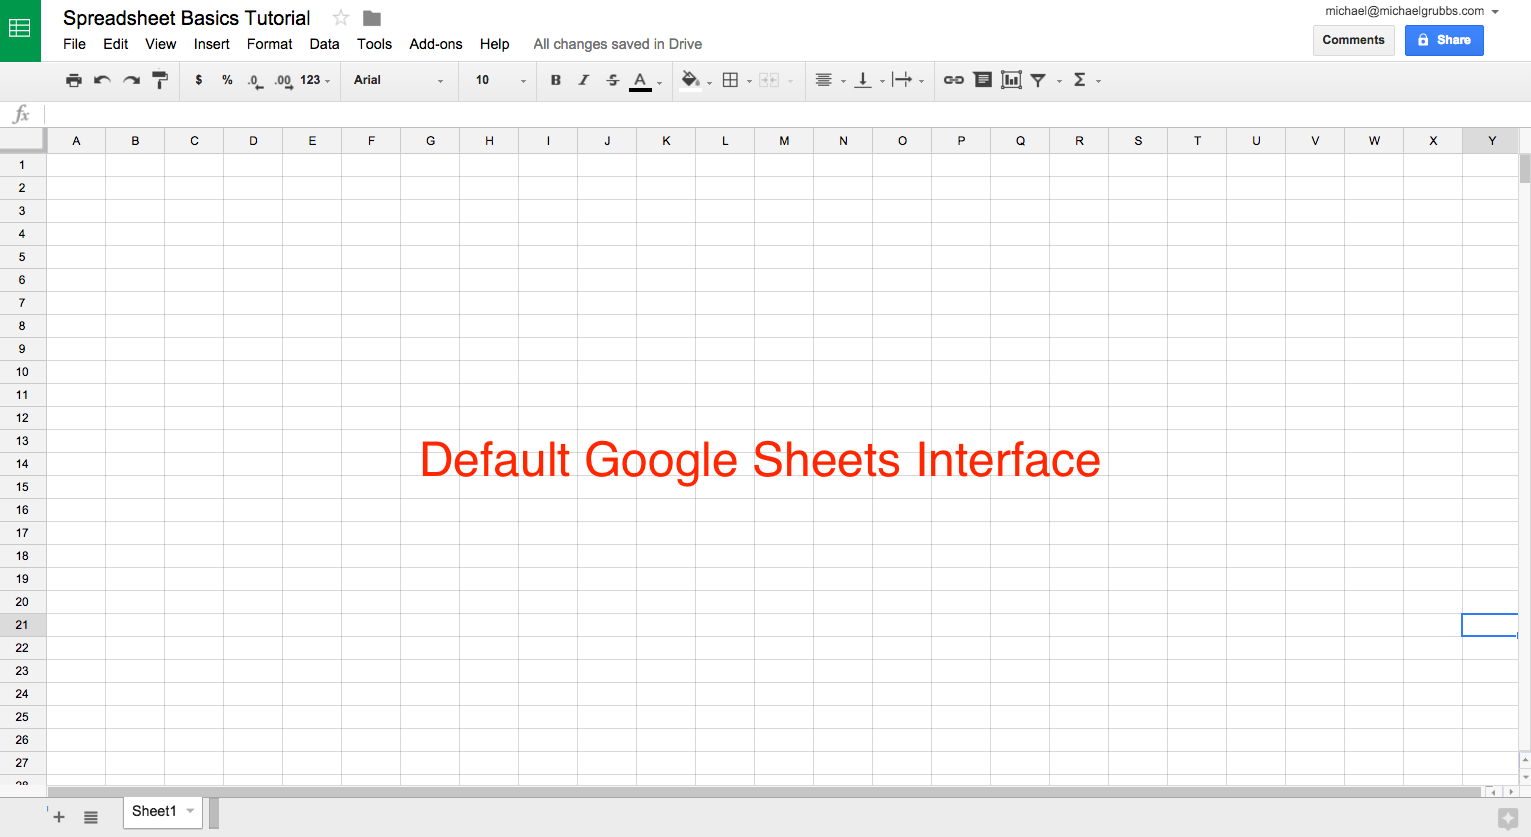 How To Use Google Spreadsheet In Google Sheets 101: The Beginner's Guide To Online Spreadsheets  The